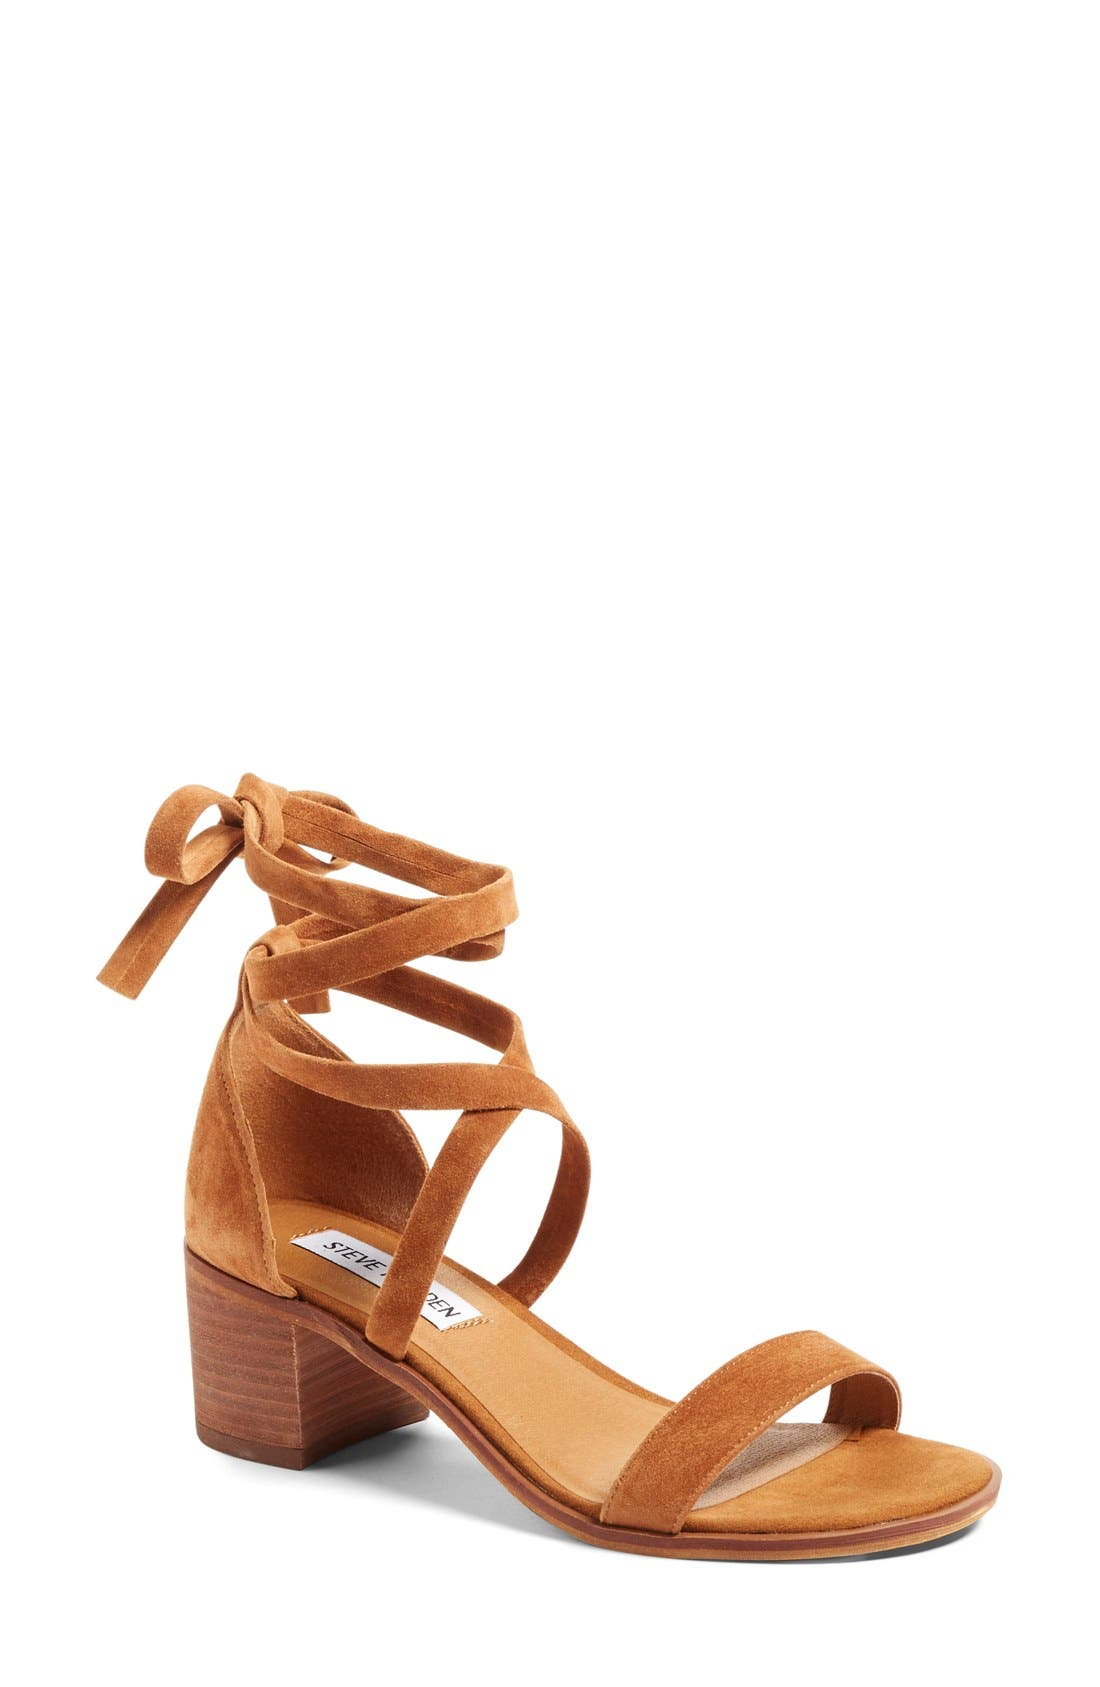 STEVE MADDEN,                             'Rizzaa' Ankle Strap Sandal,                             Main thumbnail 1, color,                             200